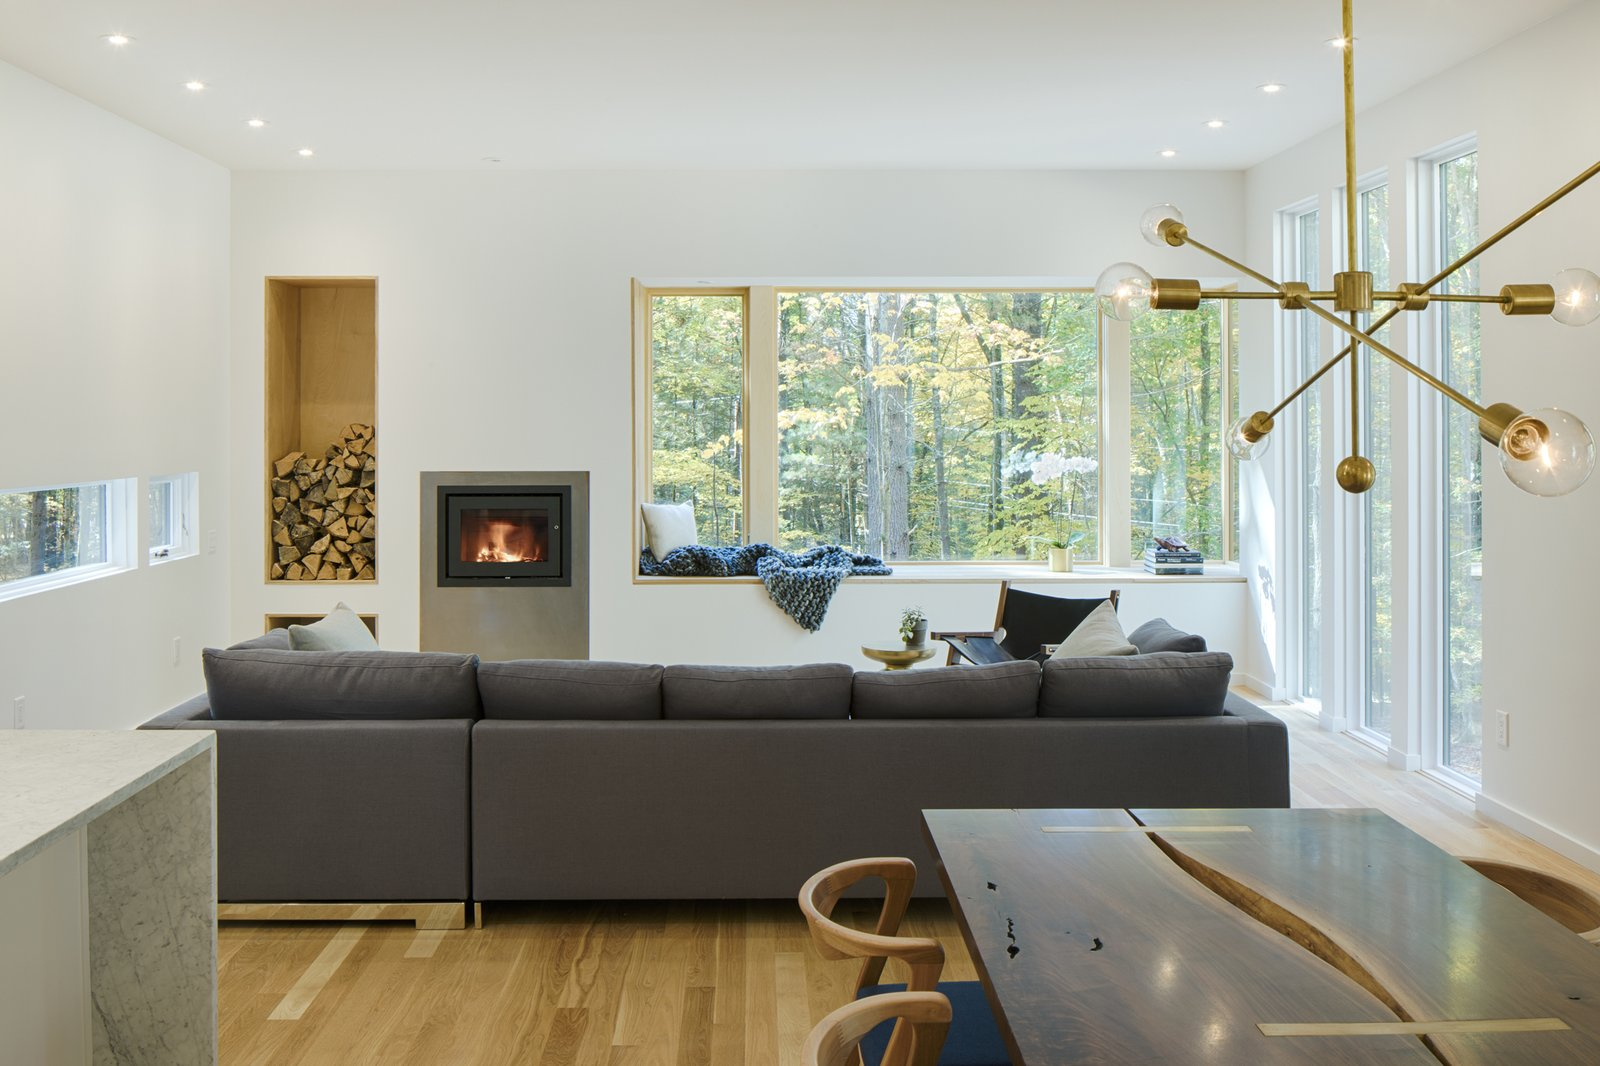 Tagged: Wood Burning Fireplace, Sofa, Recessed Lighting, Light Hardwood Floor, Chair, Table, and Living Room.  TinkerBox